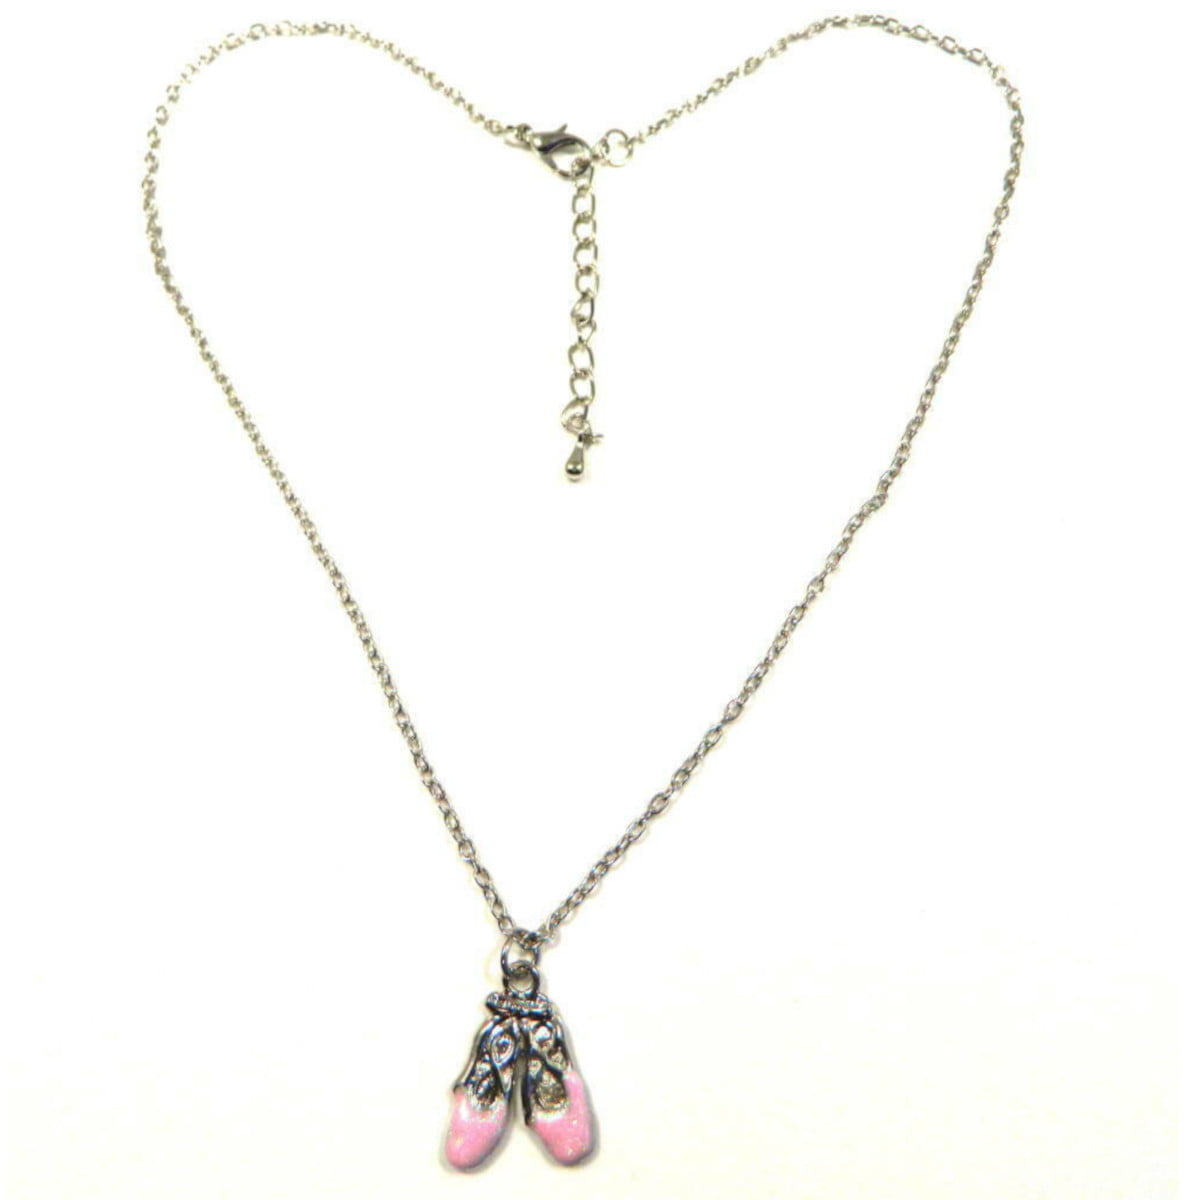 Necklace with childs pink ballerina shoe pendant 1